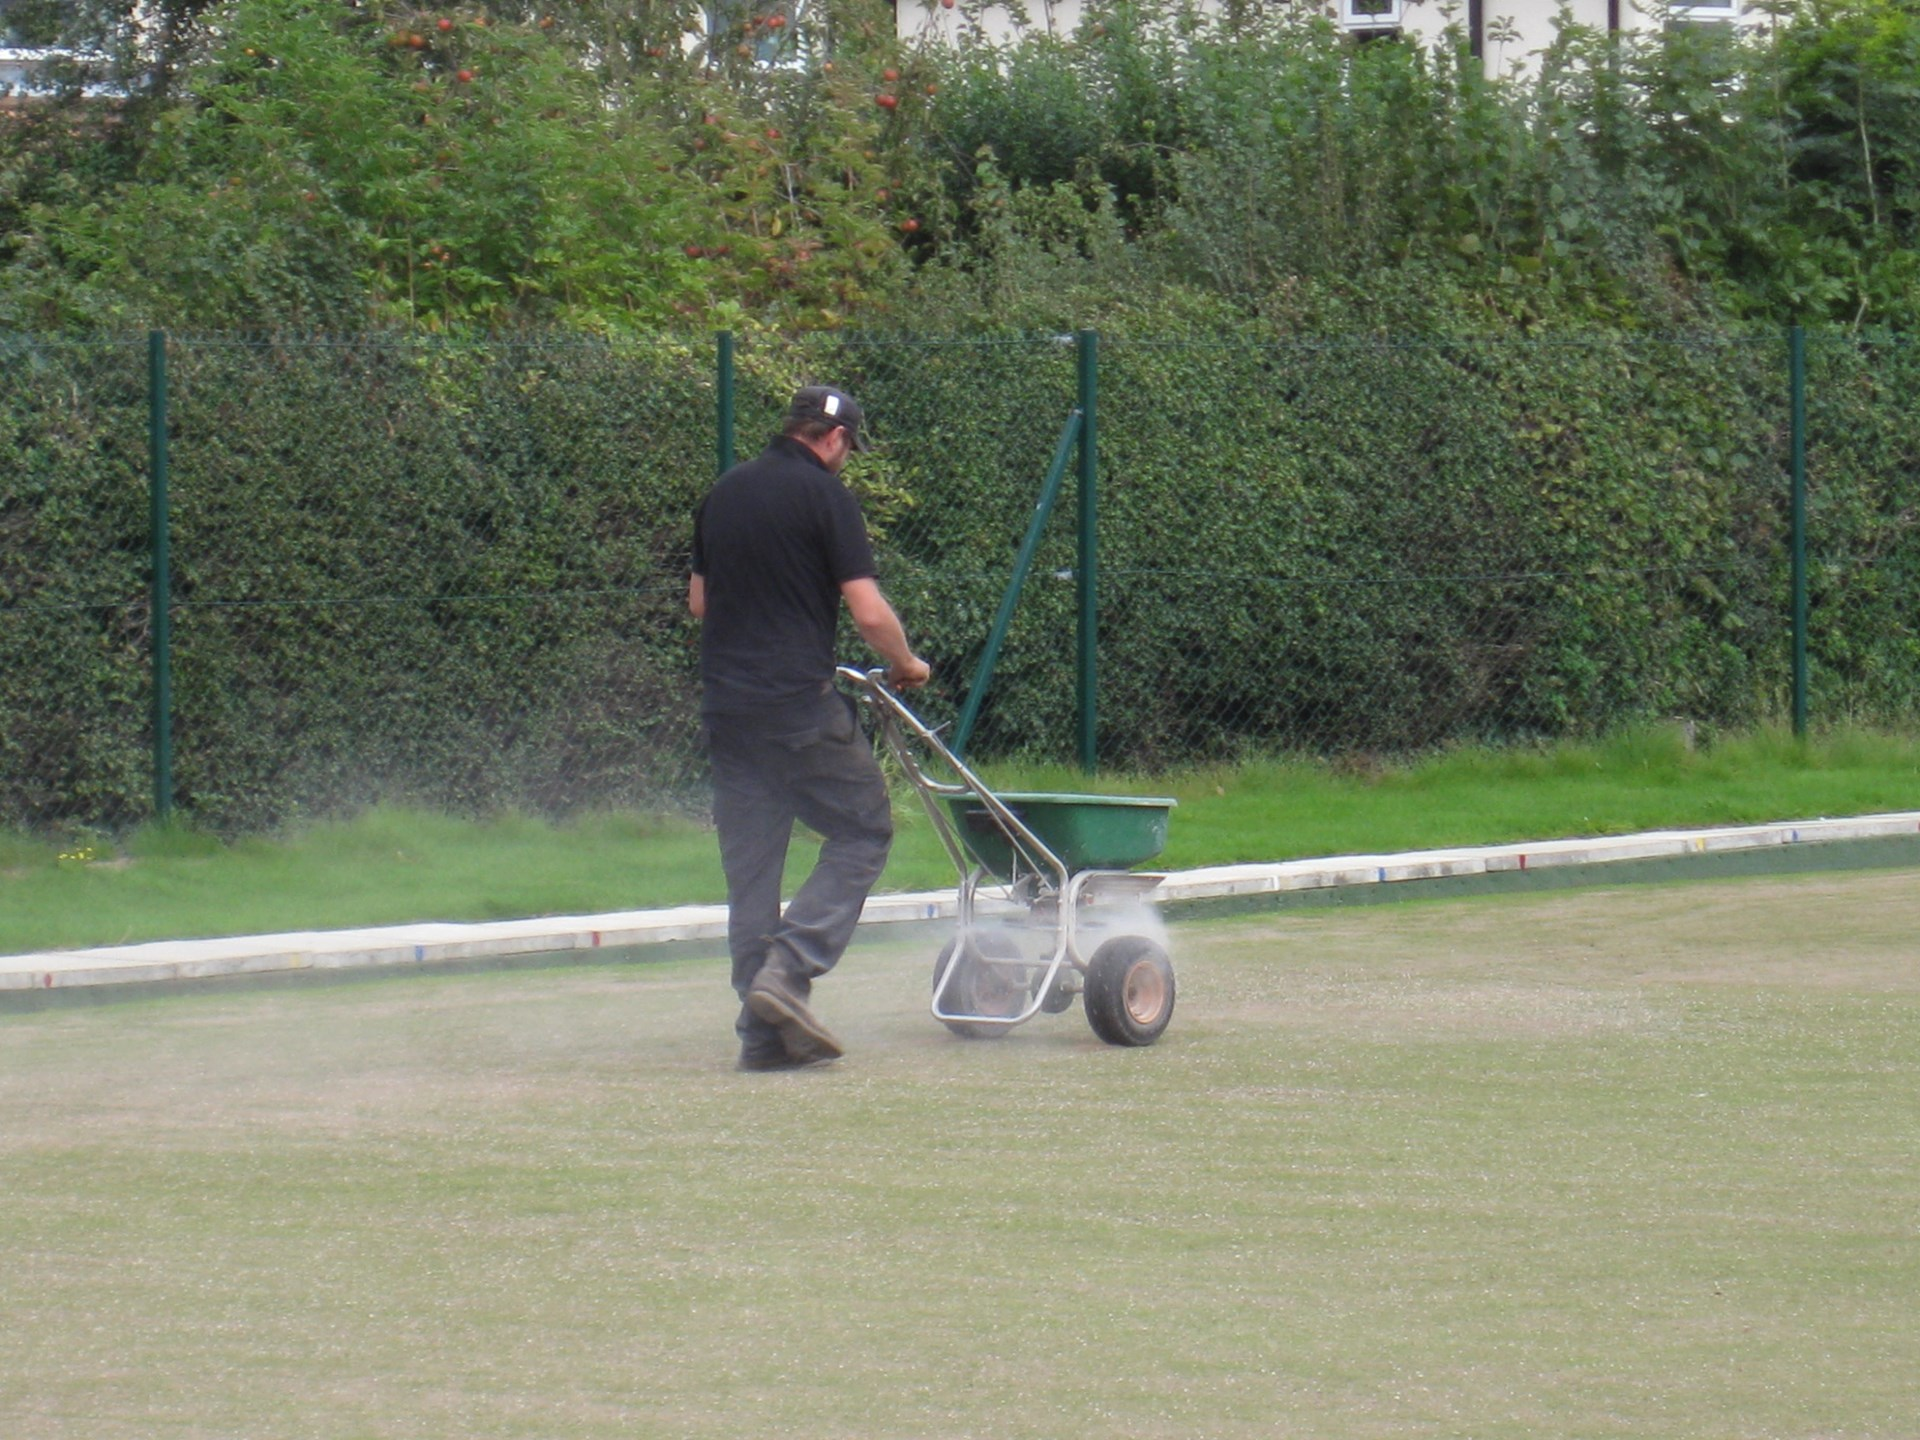 Finally, application of autumn fertiliser.